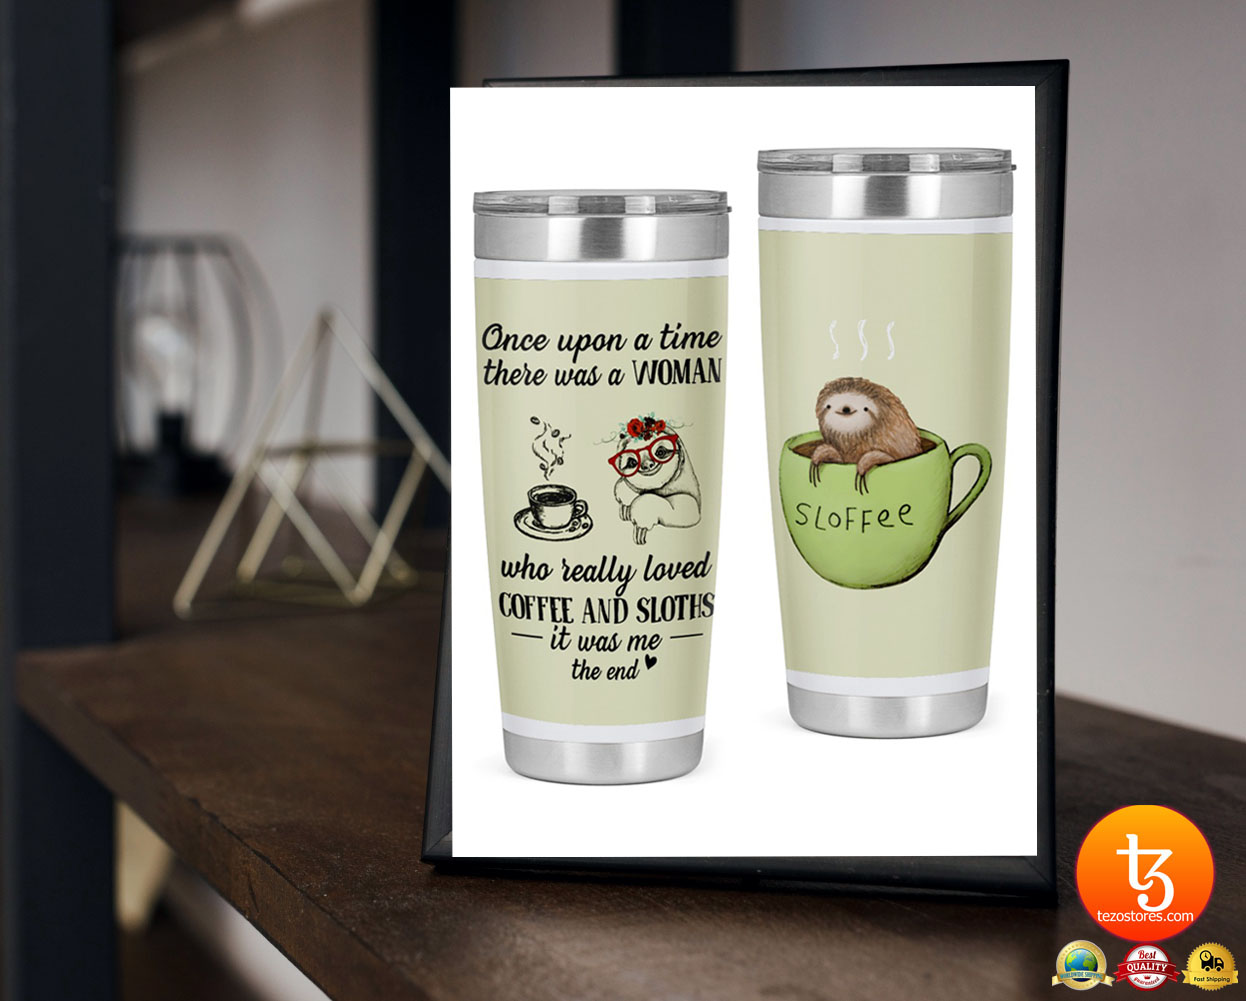 Once upon a time there was a woman who really loved coffee and sloths tumbler 23